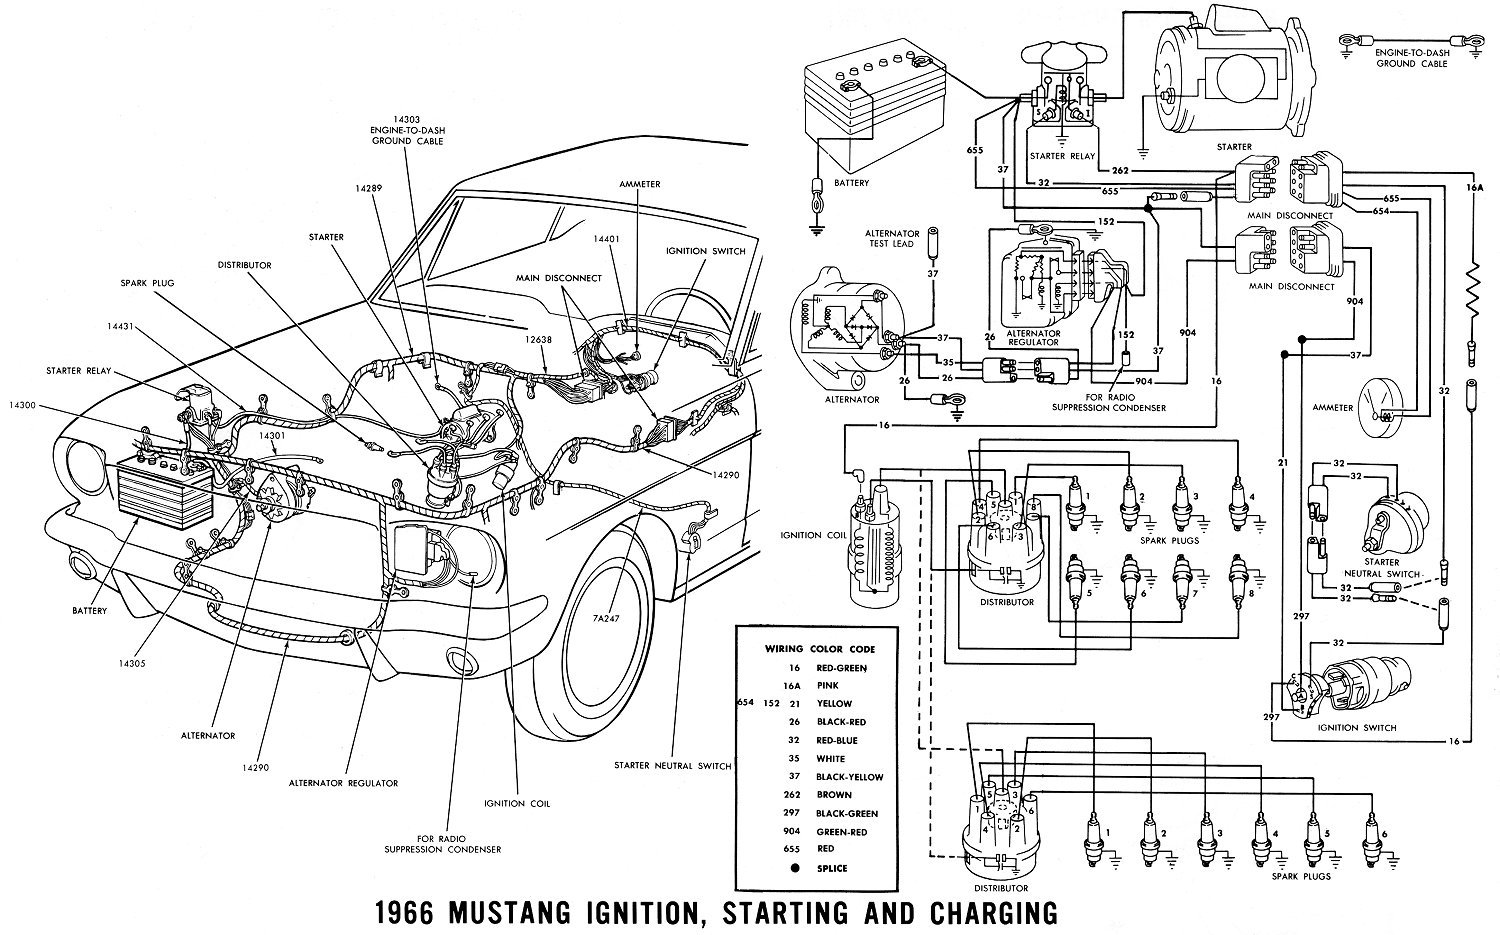 68 Mustang Fastback Wiring Diagram Starting Know About 1018 Cub Cadet 1966 Ignition Switch What Pins Are